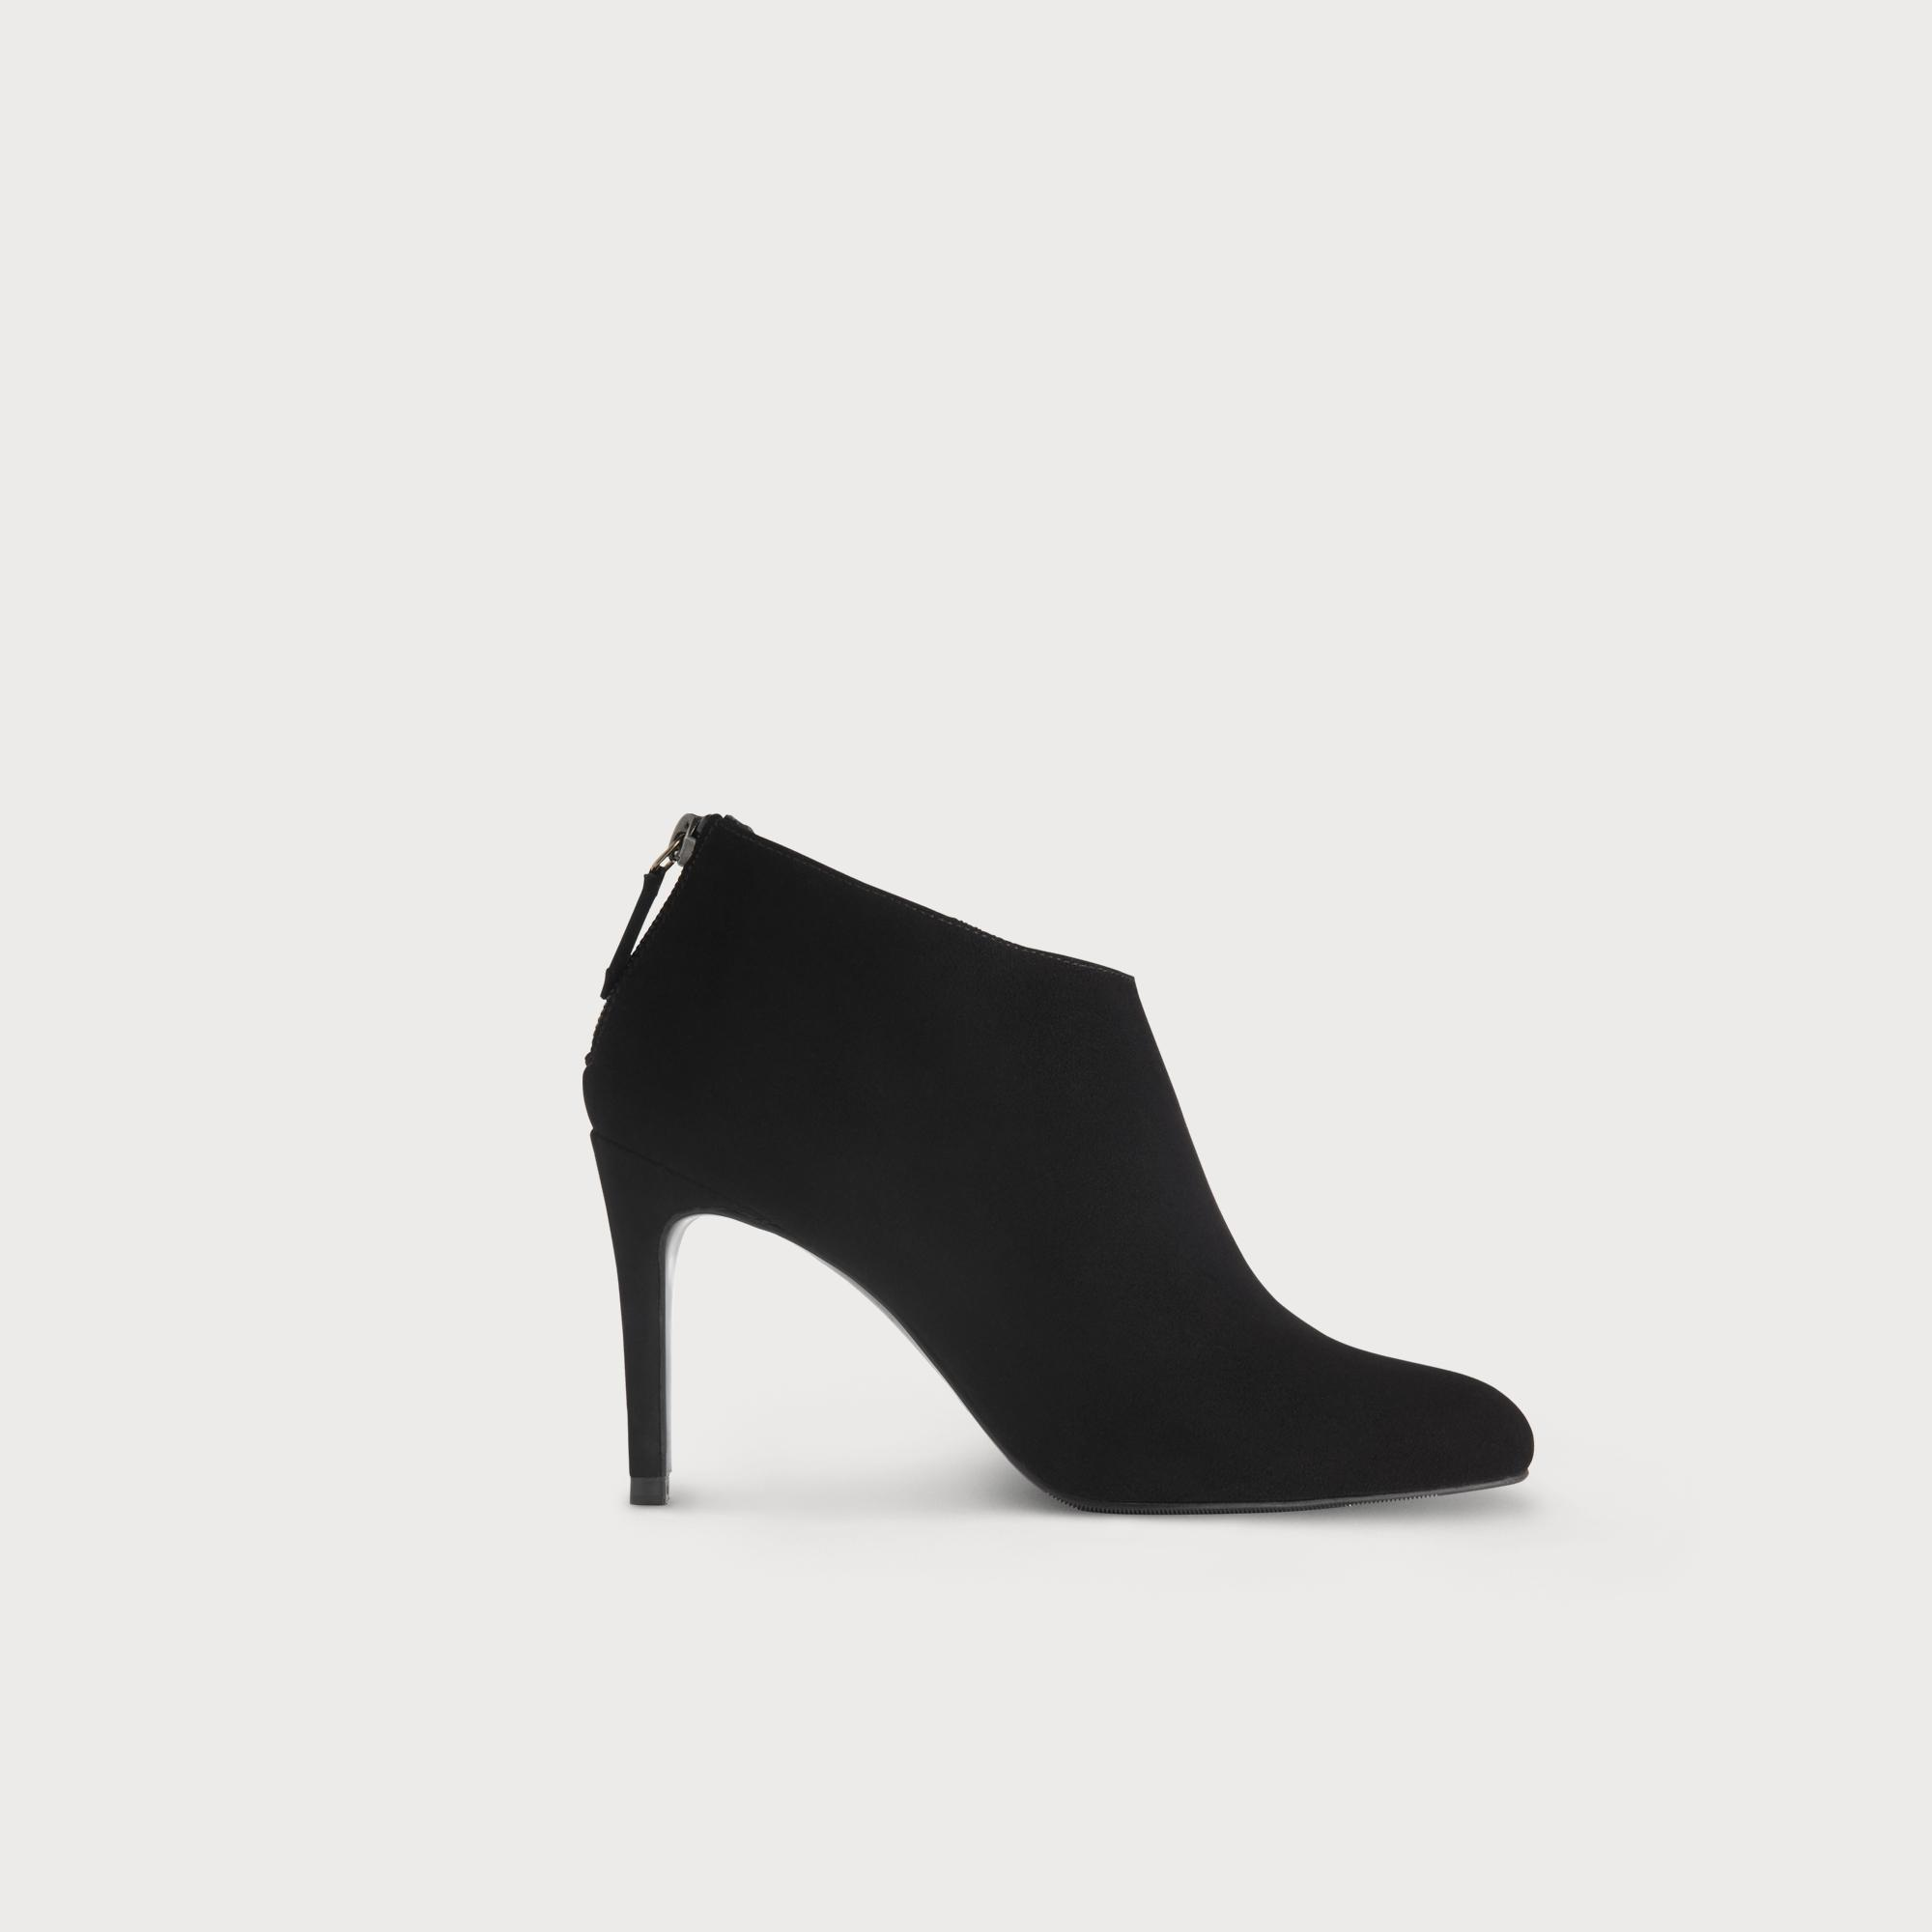 Emily Black Suede Ankle Boots | Shoes